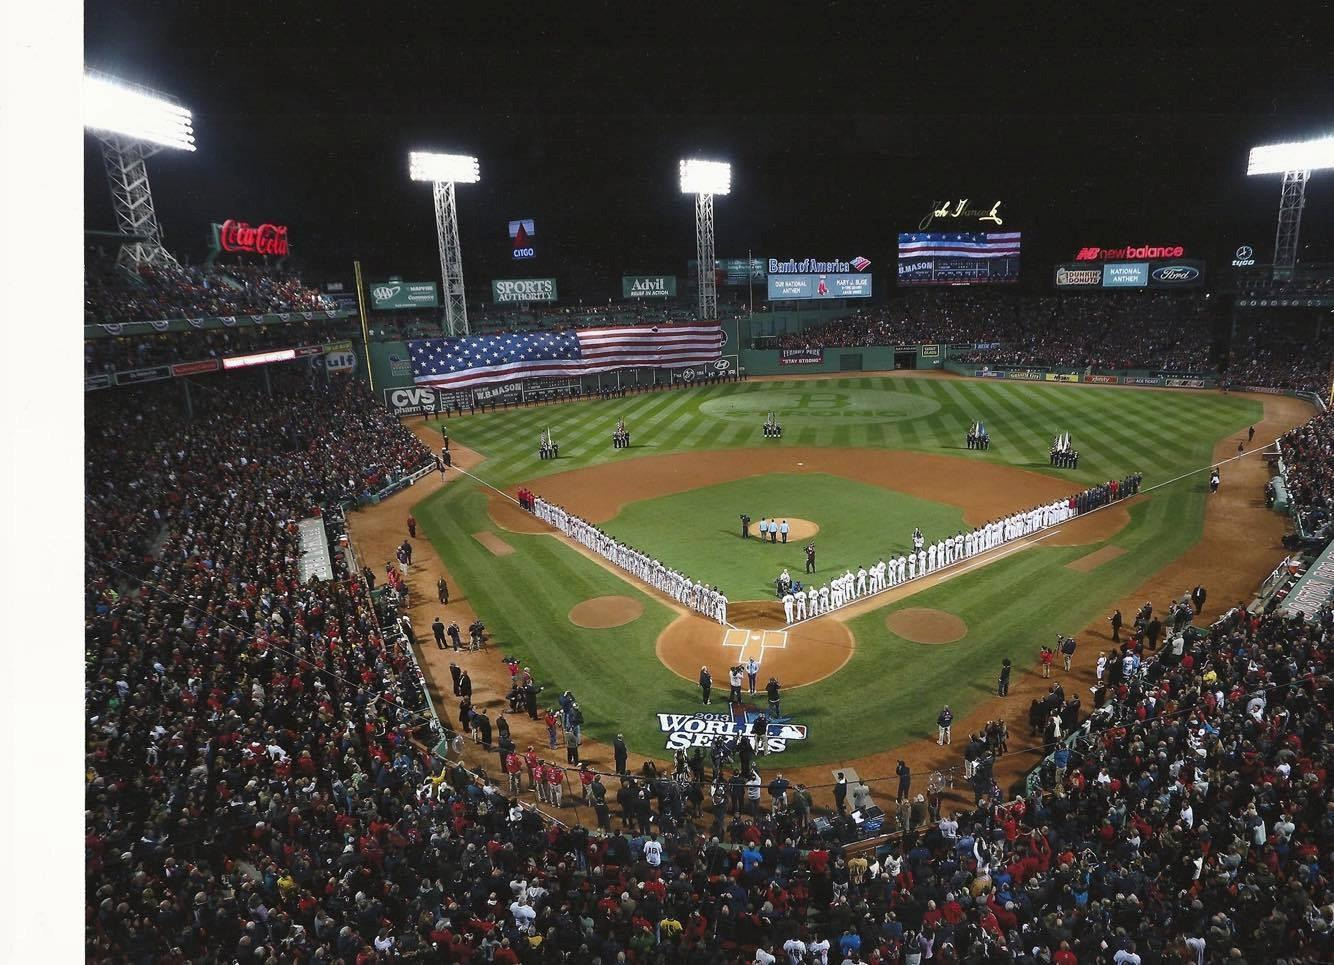 Summer road trips and baseball go hand in hand as a part of the American experience. Fenway Park in Boston is one amazing park that is an easy overnight trip.